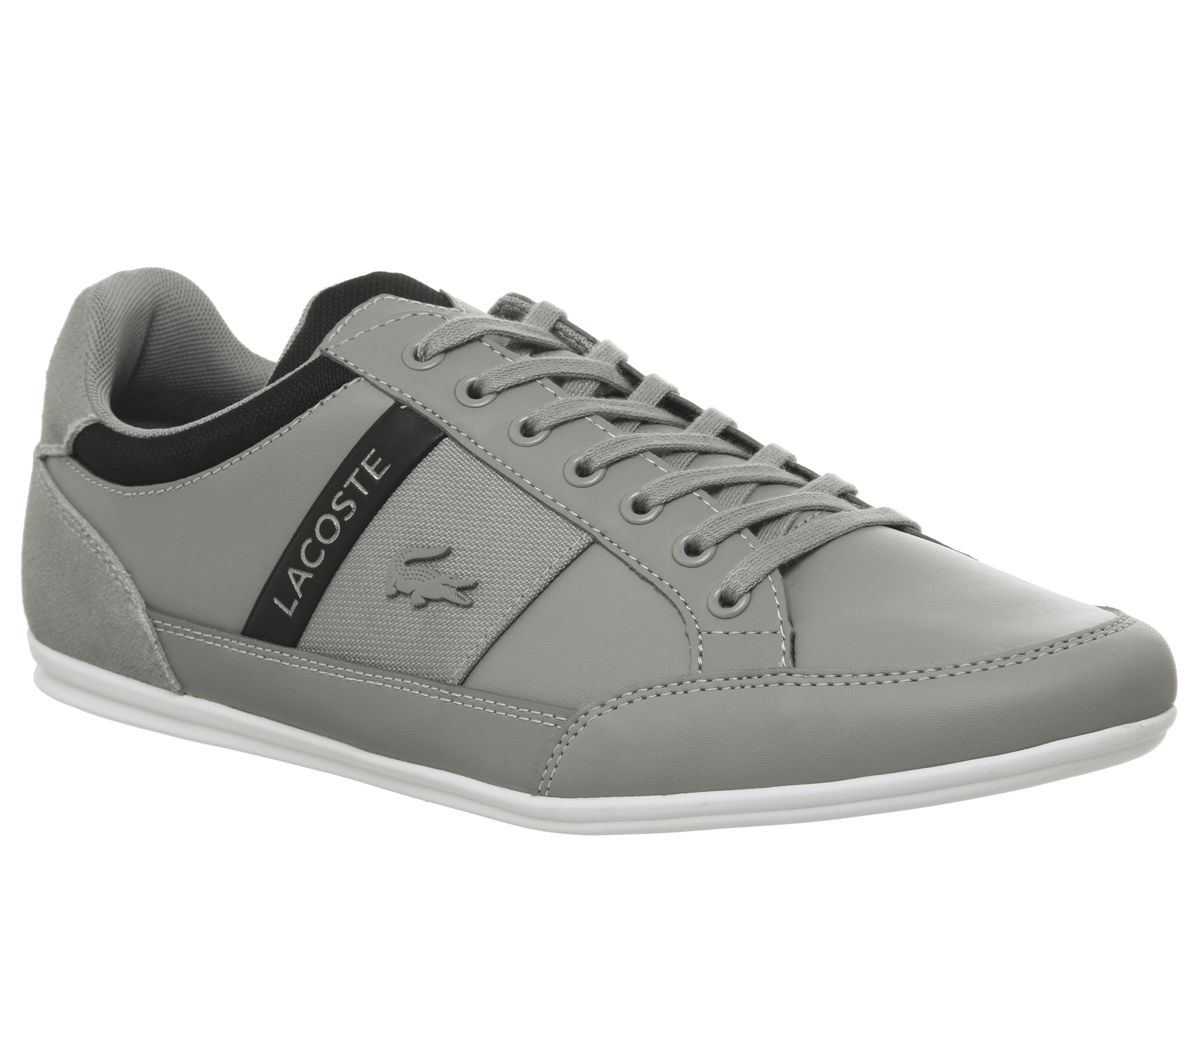 9c45daa63 Lacoste Chaymon Trainers Grey Black - His trainers